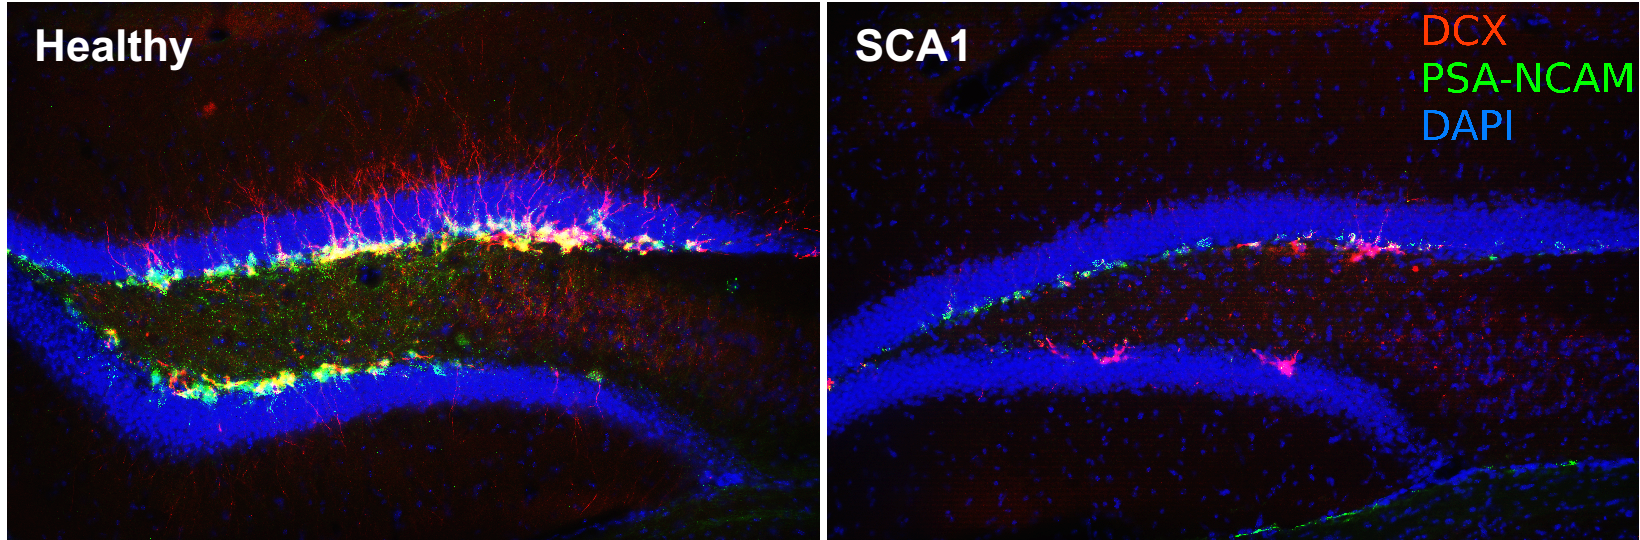 he hippocampi of mice with spinocerebellar ataxia 1 showed dramatically impaired production of new neurons.